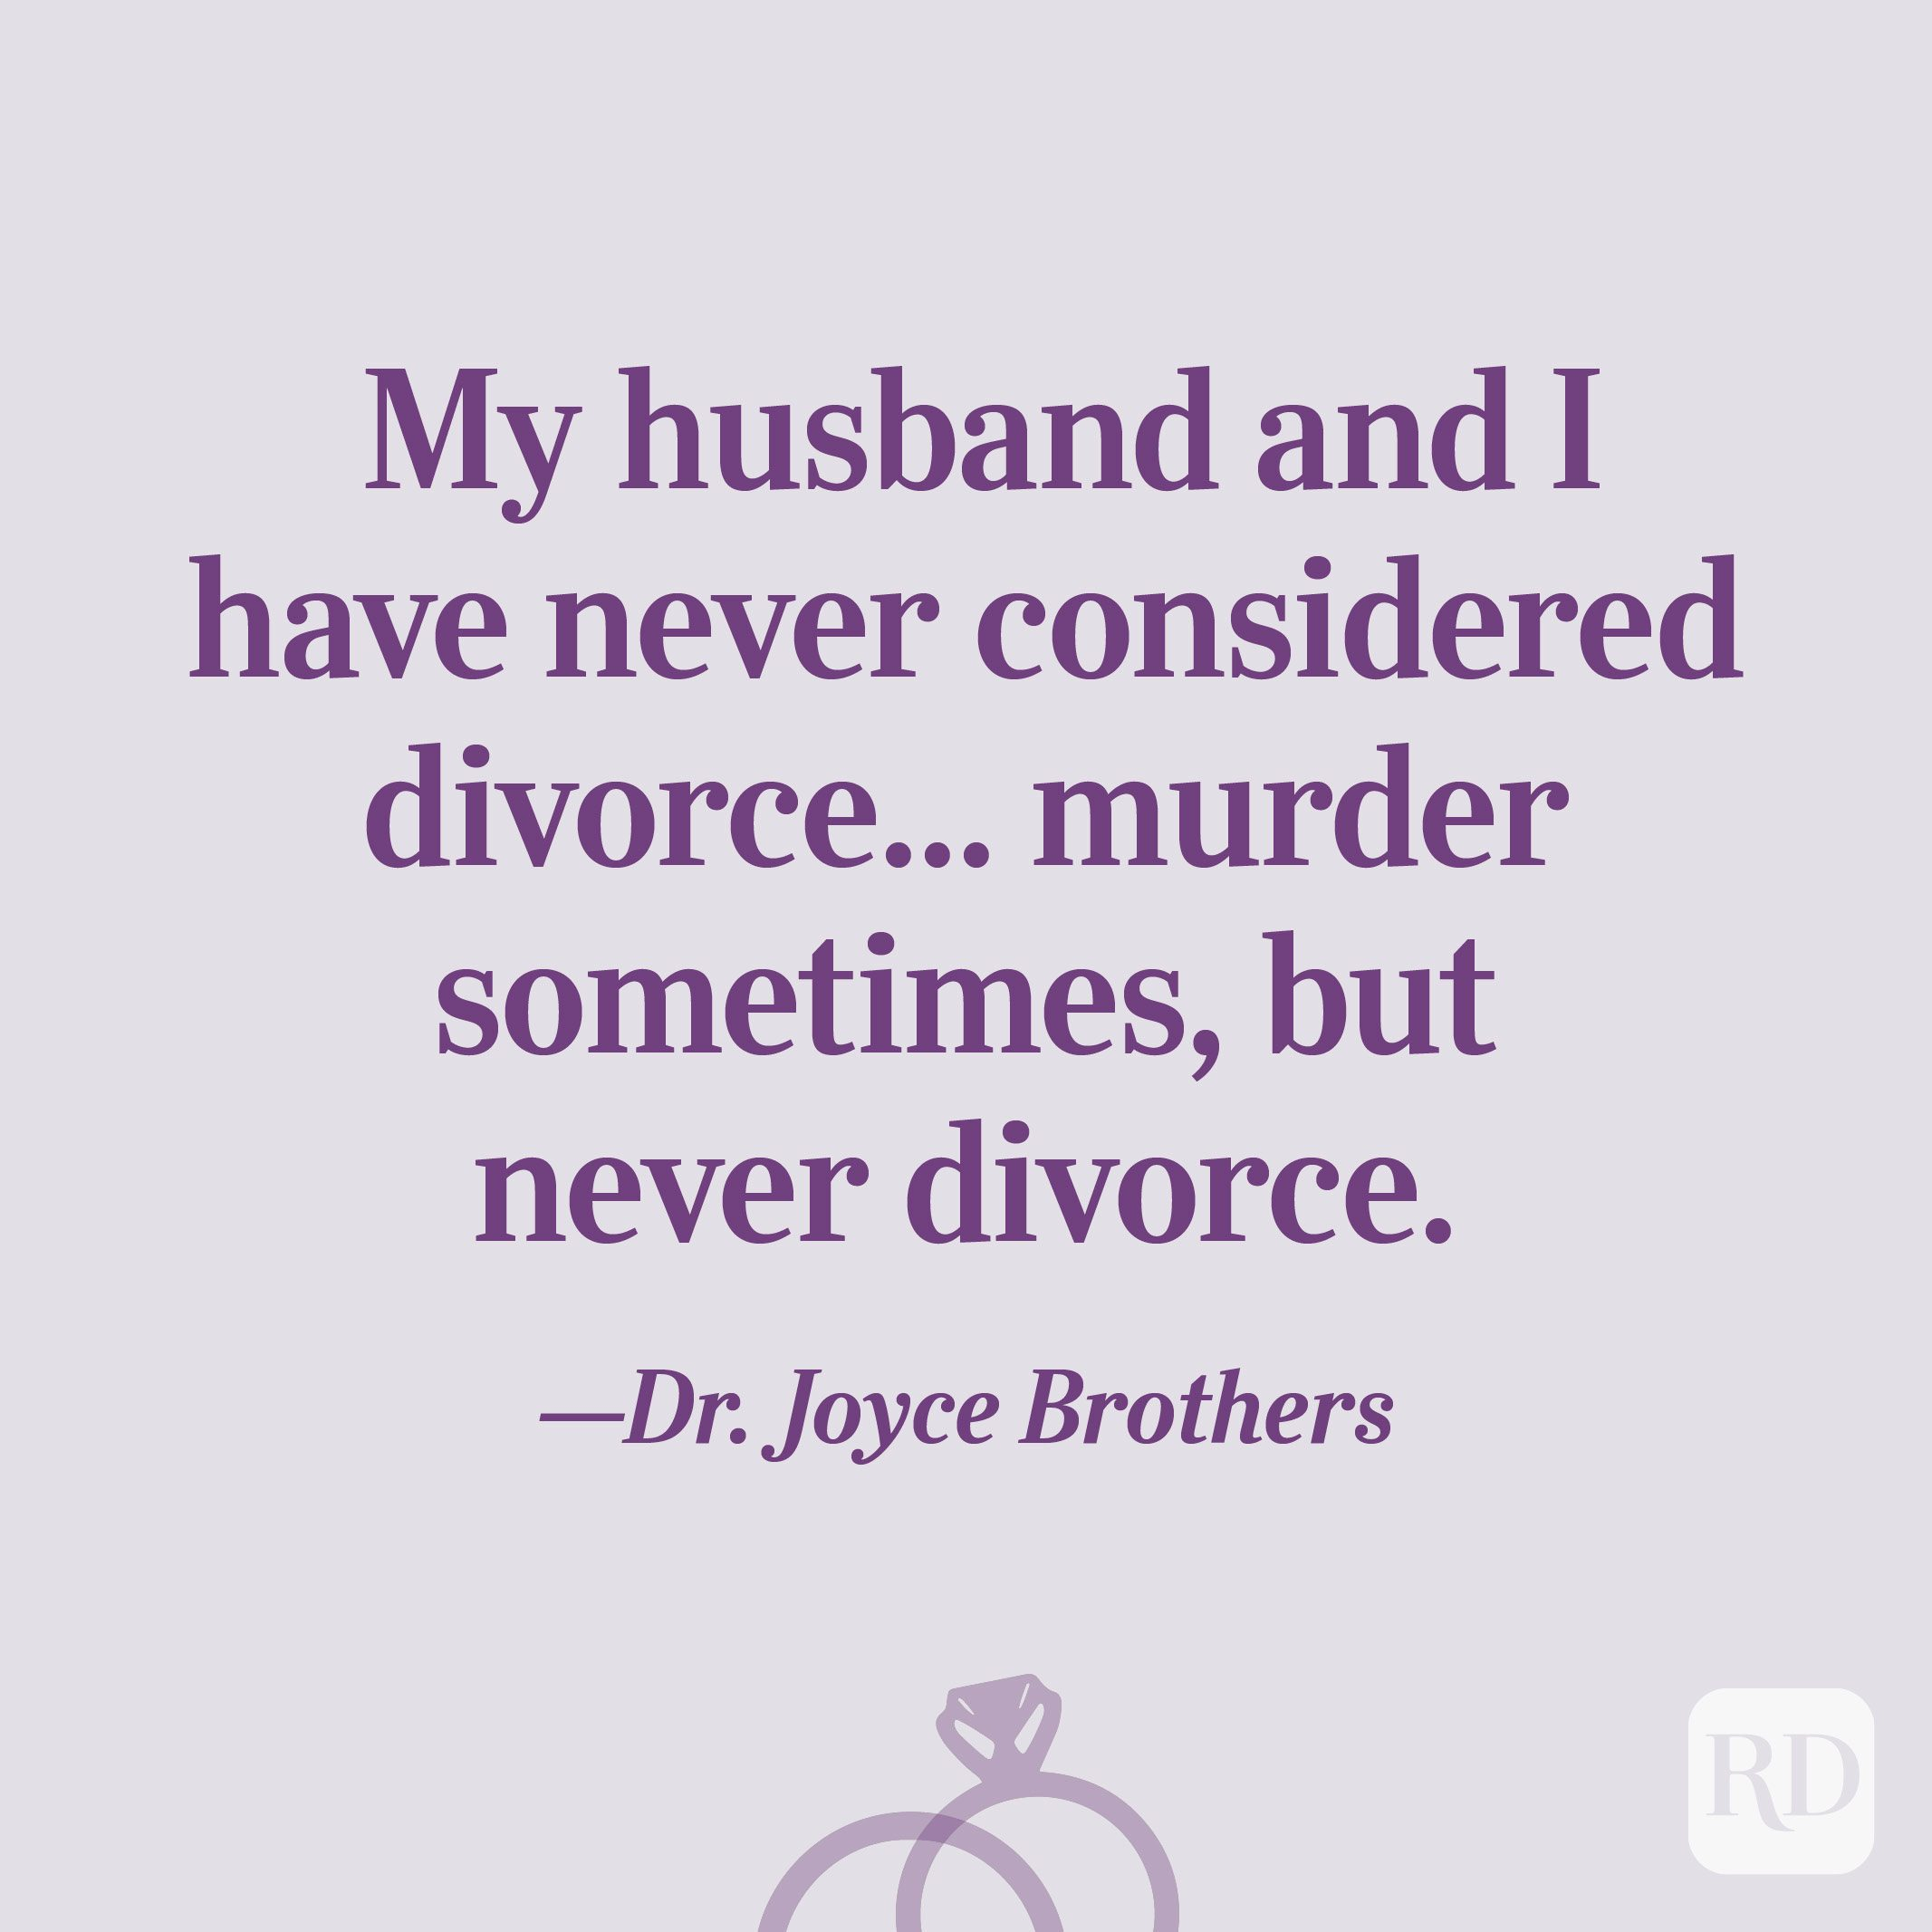 """My husband and I have never considered divorce... murder sometimes, but never divorce.""—Dr. Joyce Brothers"